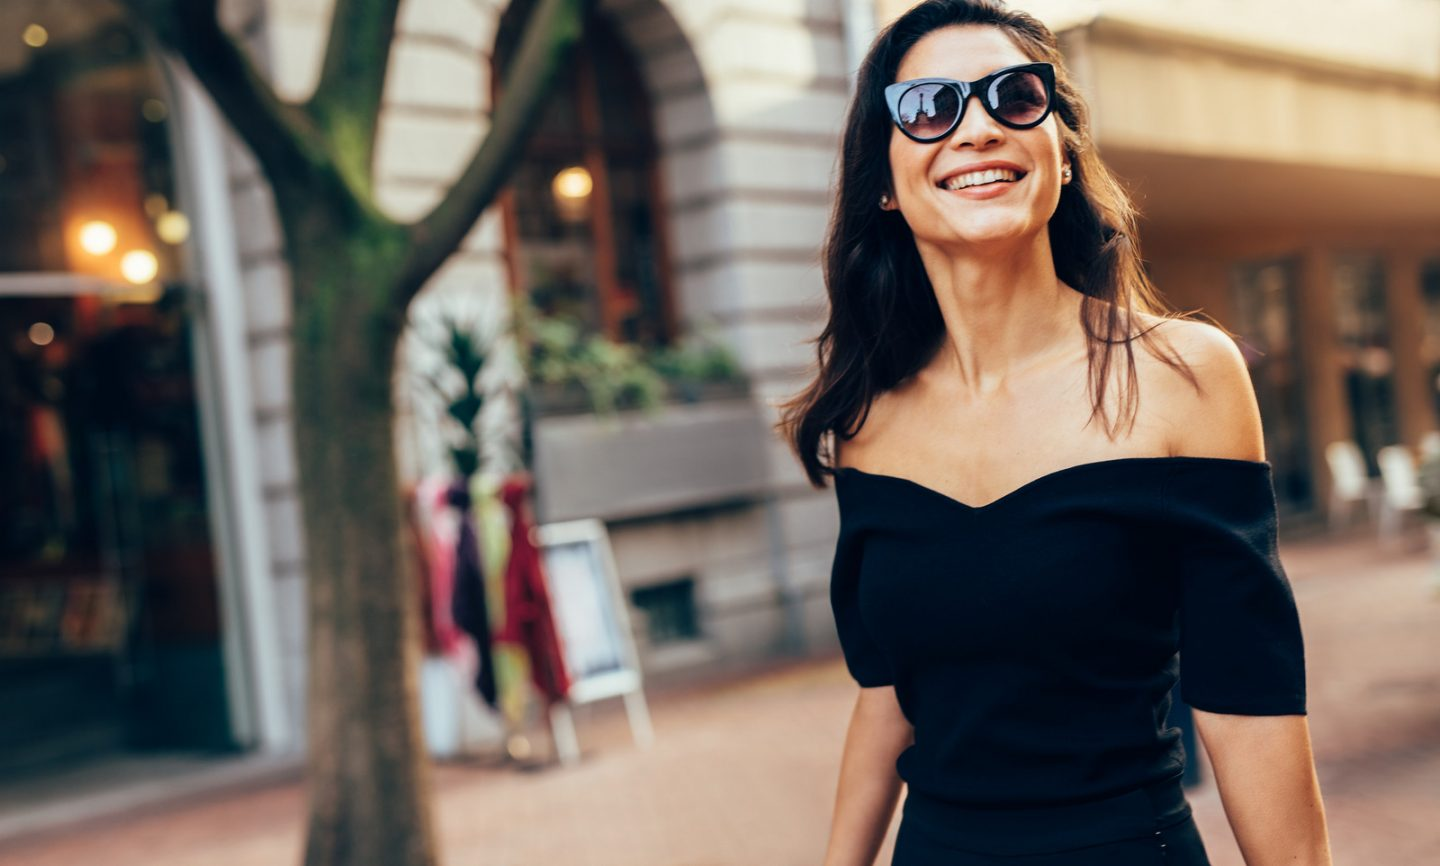 Smiling asian woman walking along the road in the city. Stylish female model with sunglasses walking on city street.